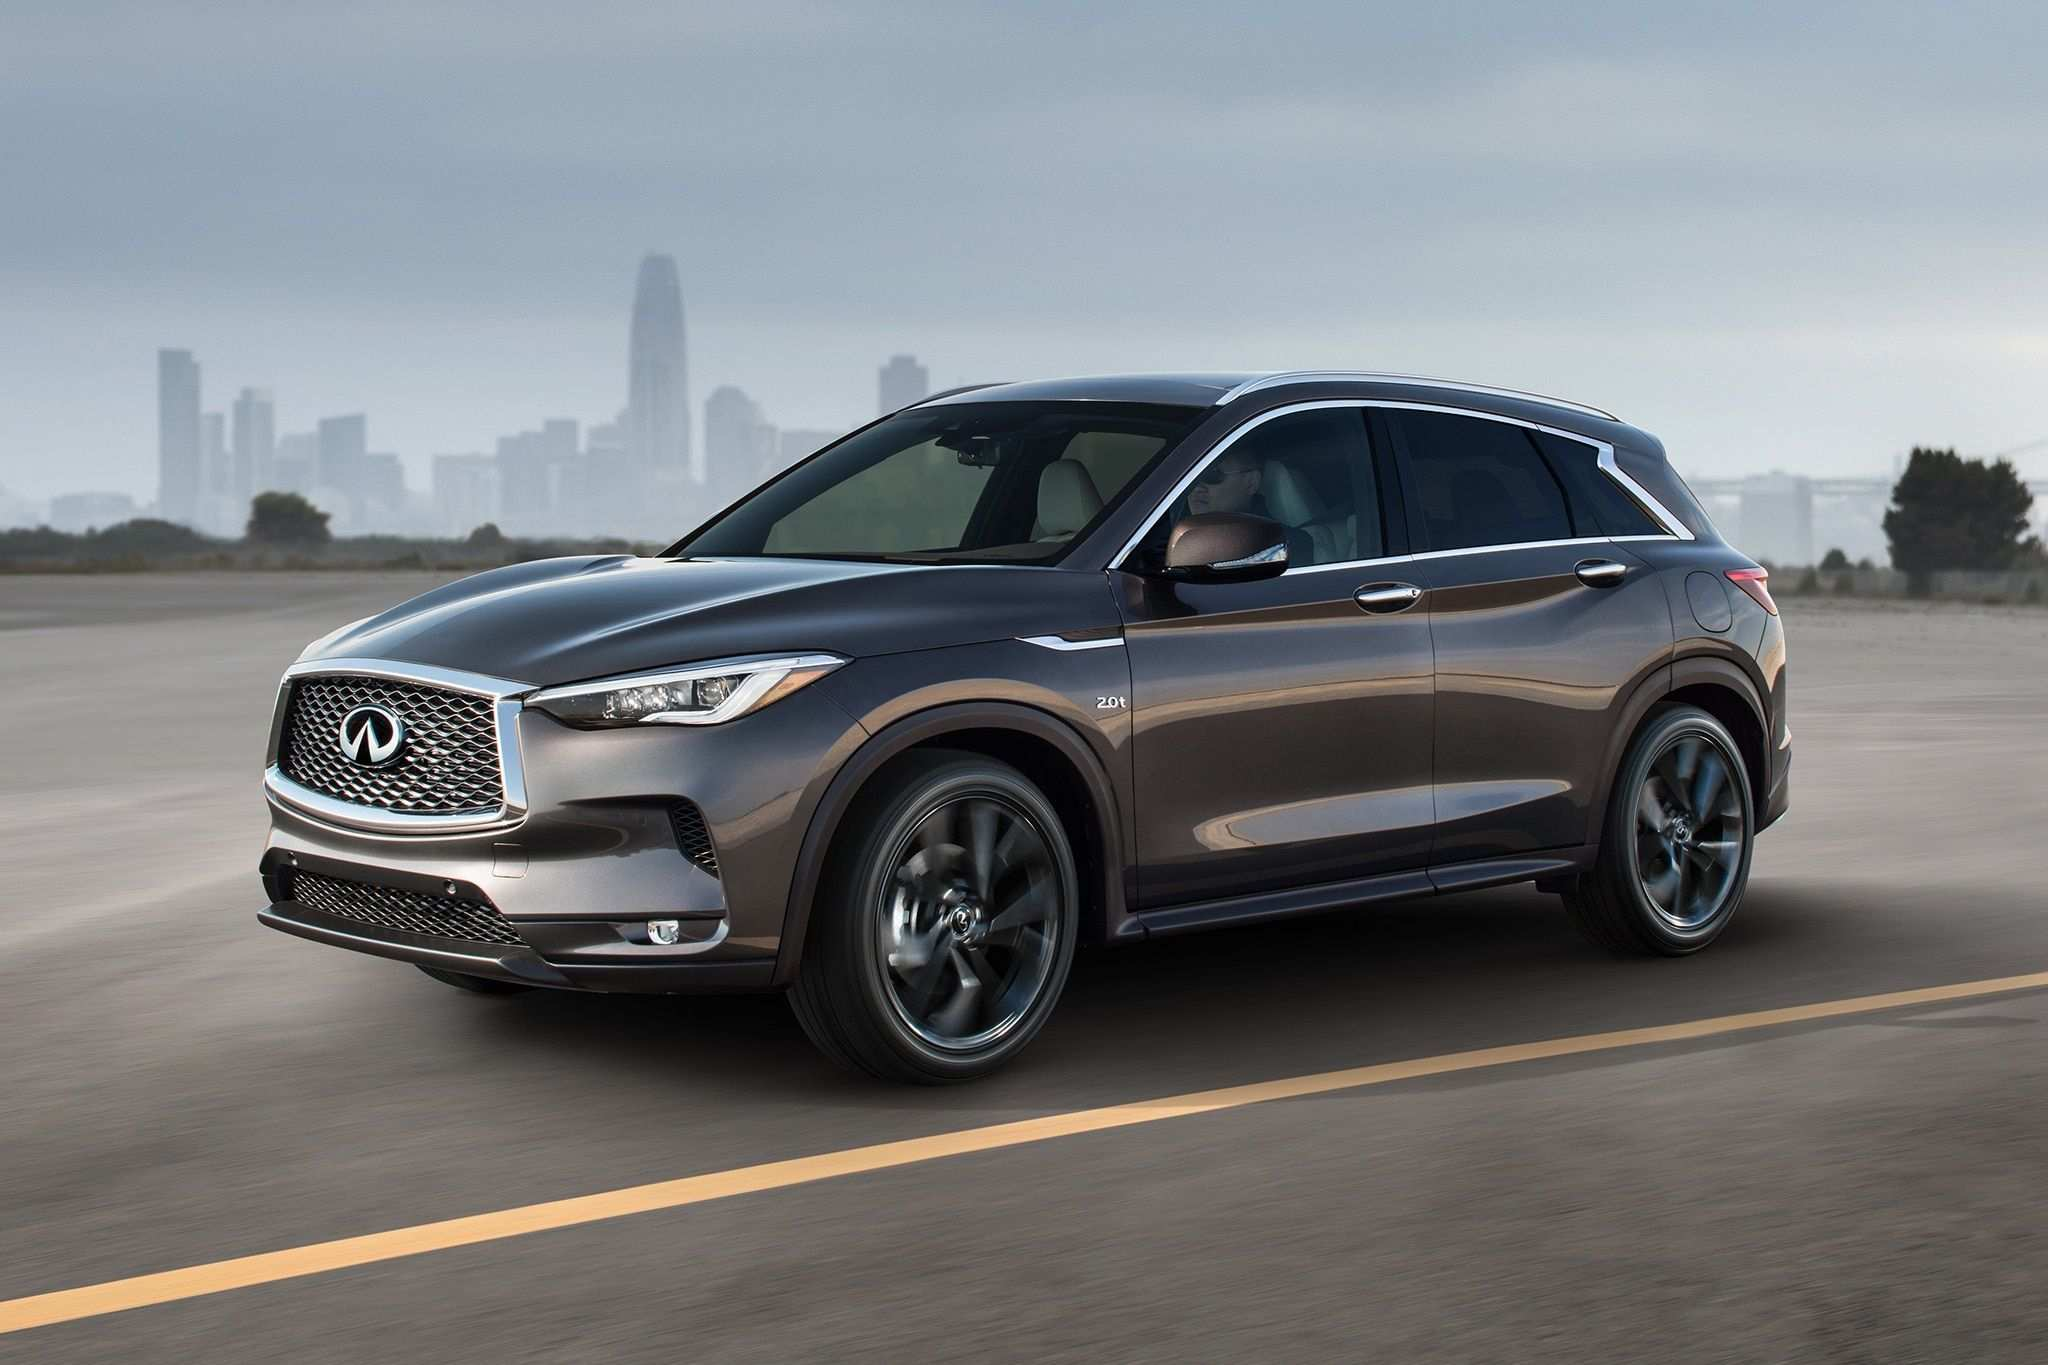 62 Best Review 2019 Infiniti Qx50 Wiki Review for 2019 Infiniti Qx50 Wiki